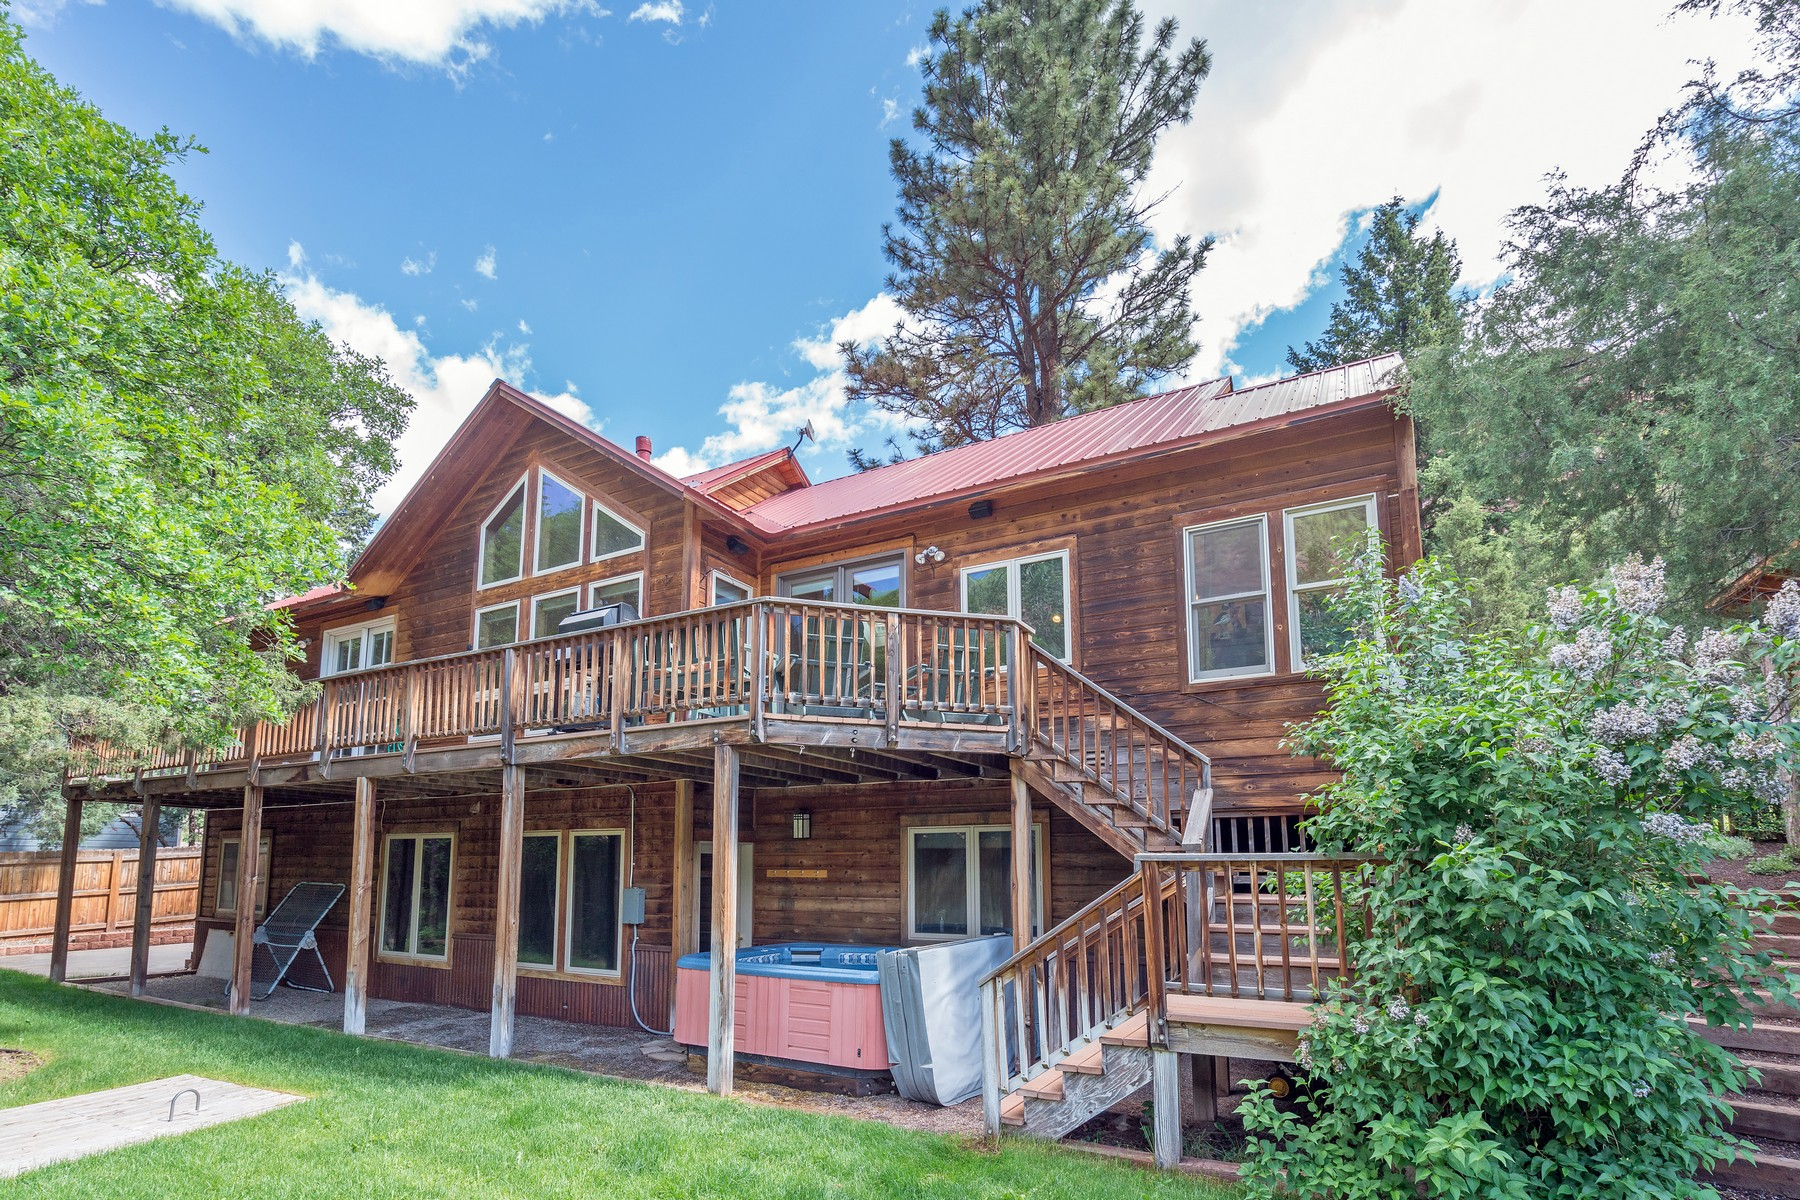 Casa Unifamiliar por un Venta en 24 Red Cliff Road Placerville, Colorado, 81430 Estados Unidos